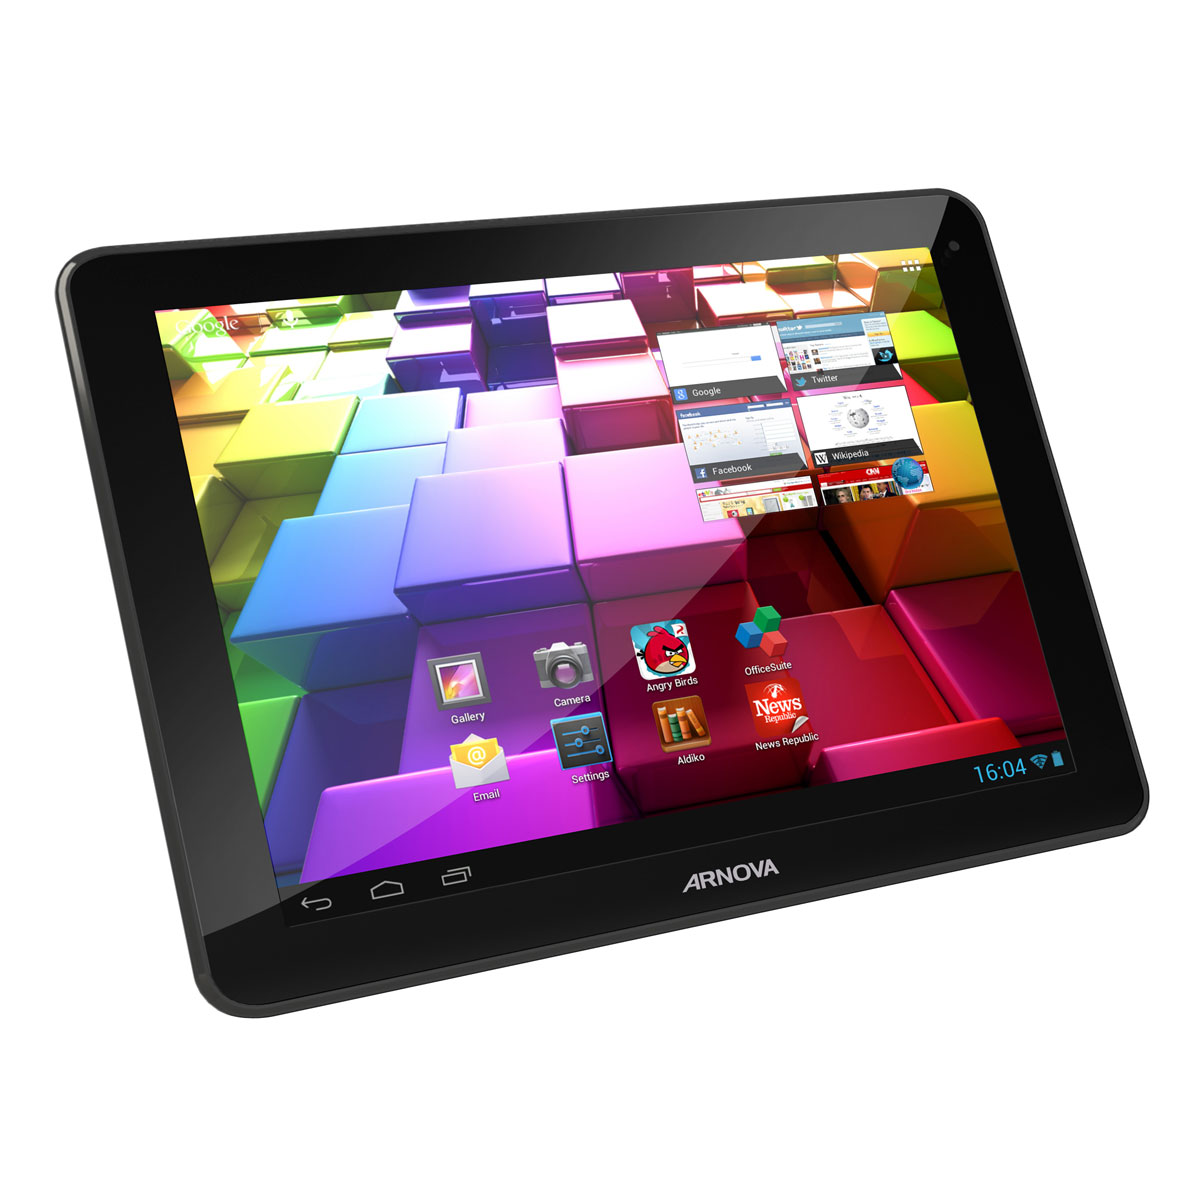 """Tablette tactile Arnova 97 G4 - 8 Go Tablette Internet - ARM Cortex A9 1.6 GHz 8 Go 9.7"""" LCD tactile Wi-Fi N Webcam Android 4.1"""